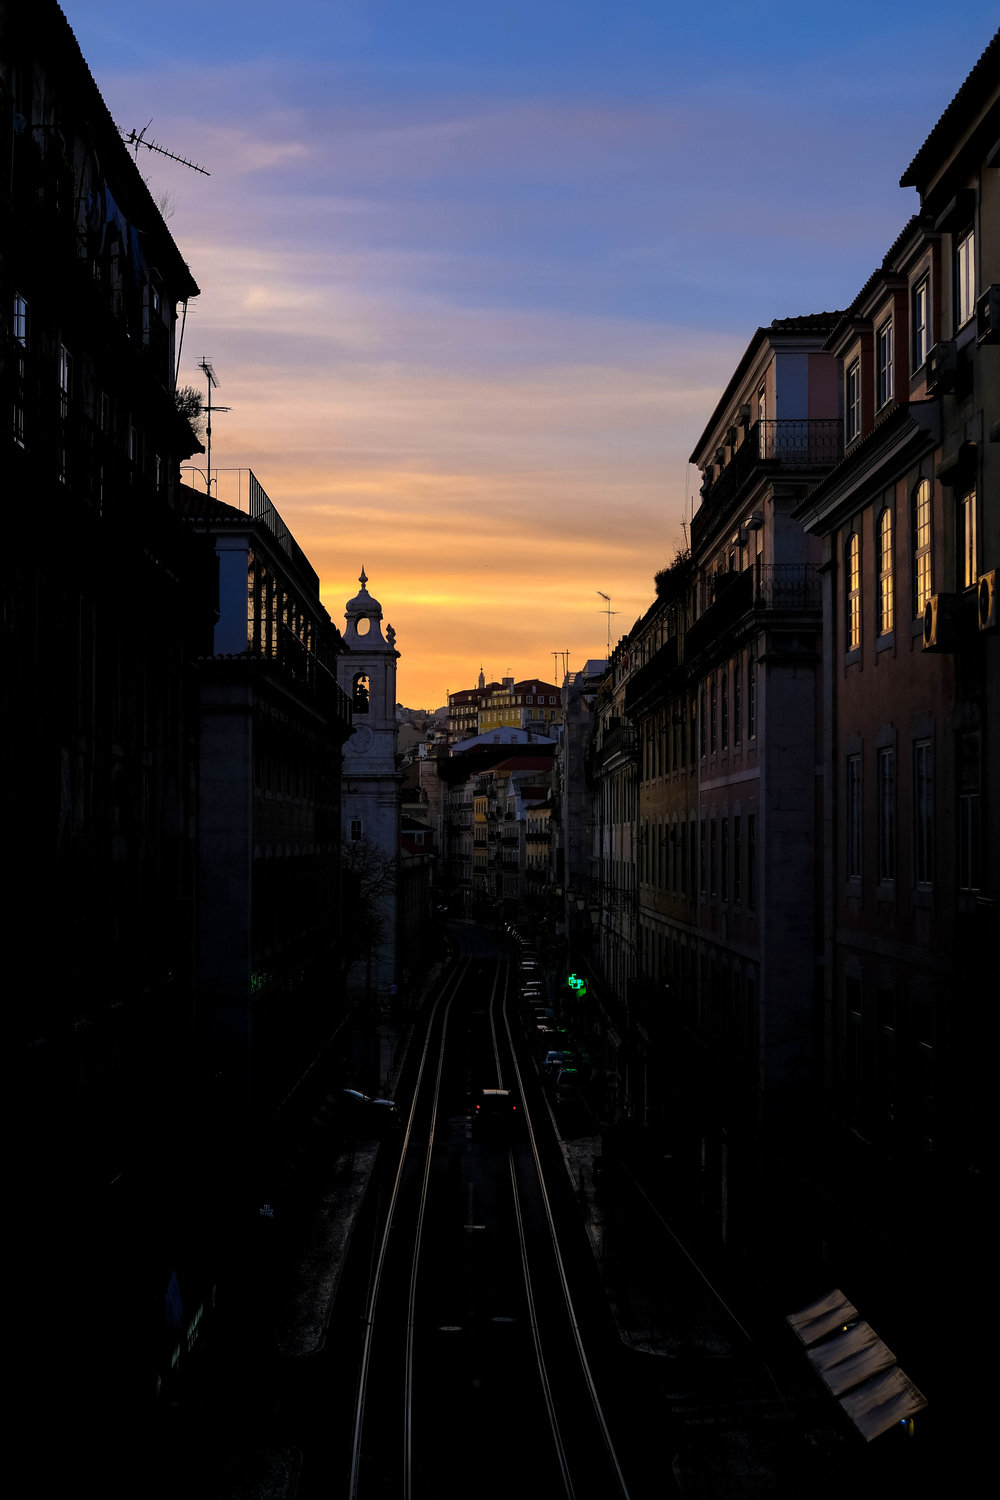 "<p style=""font-family:brandon-grotesque;font-weight:500; font-size:11px; text-center:left; color:light grey;letter-spacing: 1px"">MARCH 6, 2017 • ROSY SKIES • 📍 Lisbon, Portugal</p>"